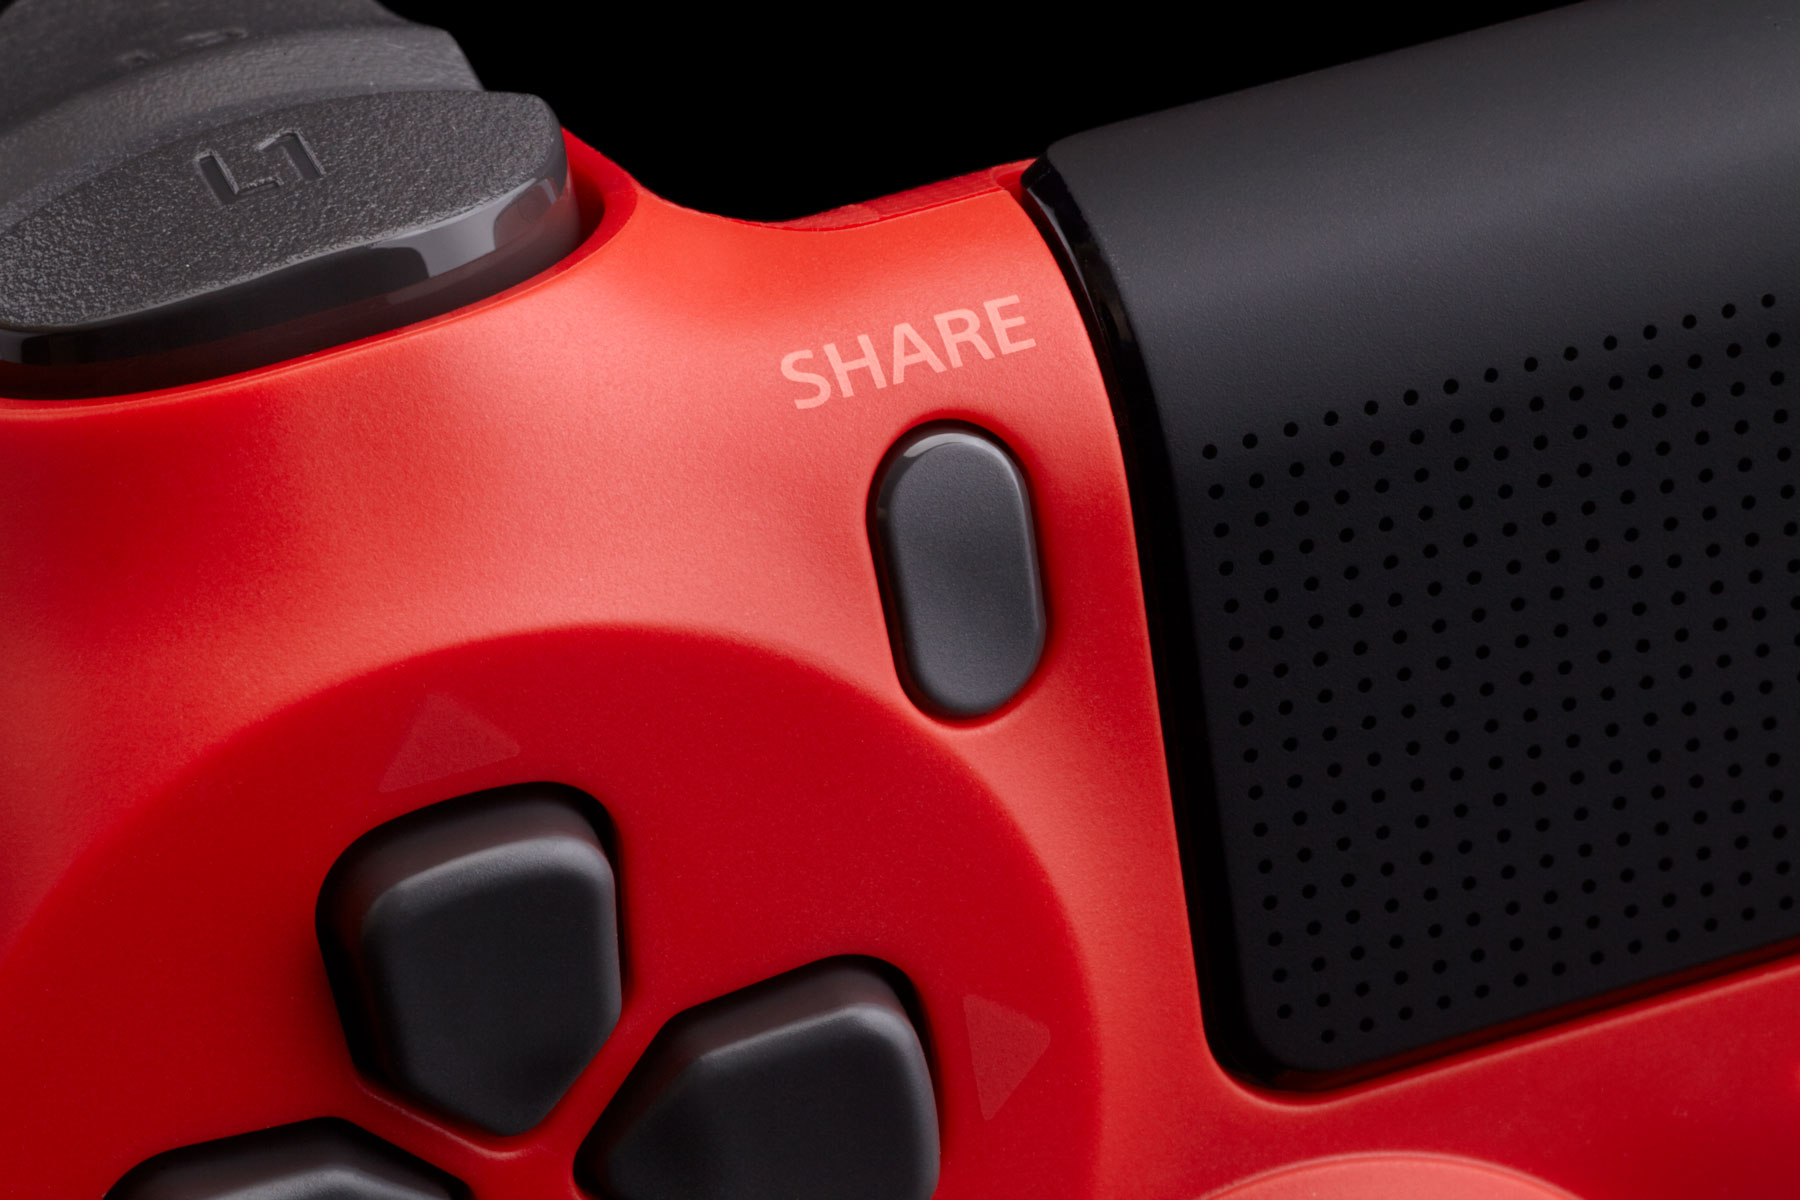 PRDCT_PS4ControllerRed-06-1800px.jpg